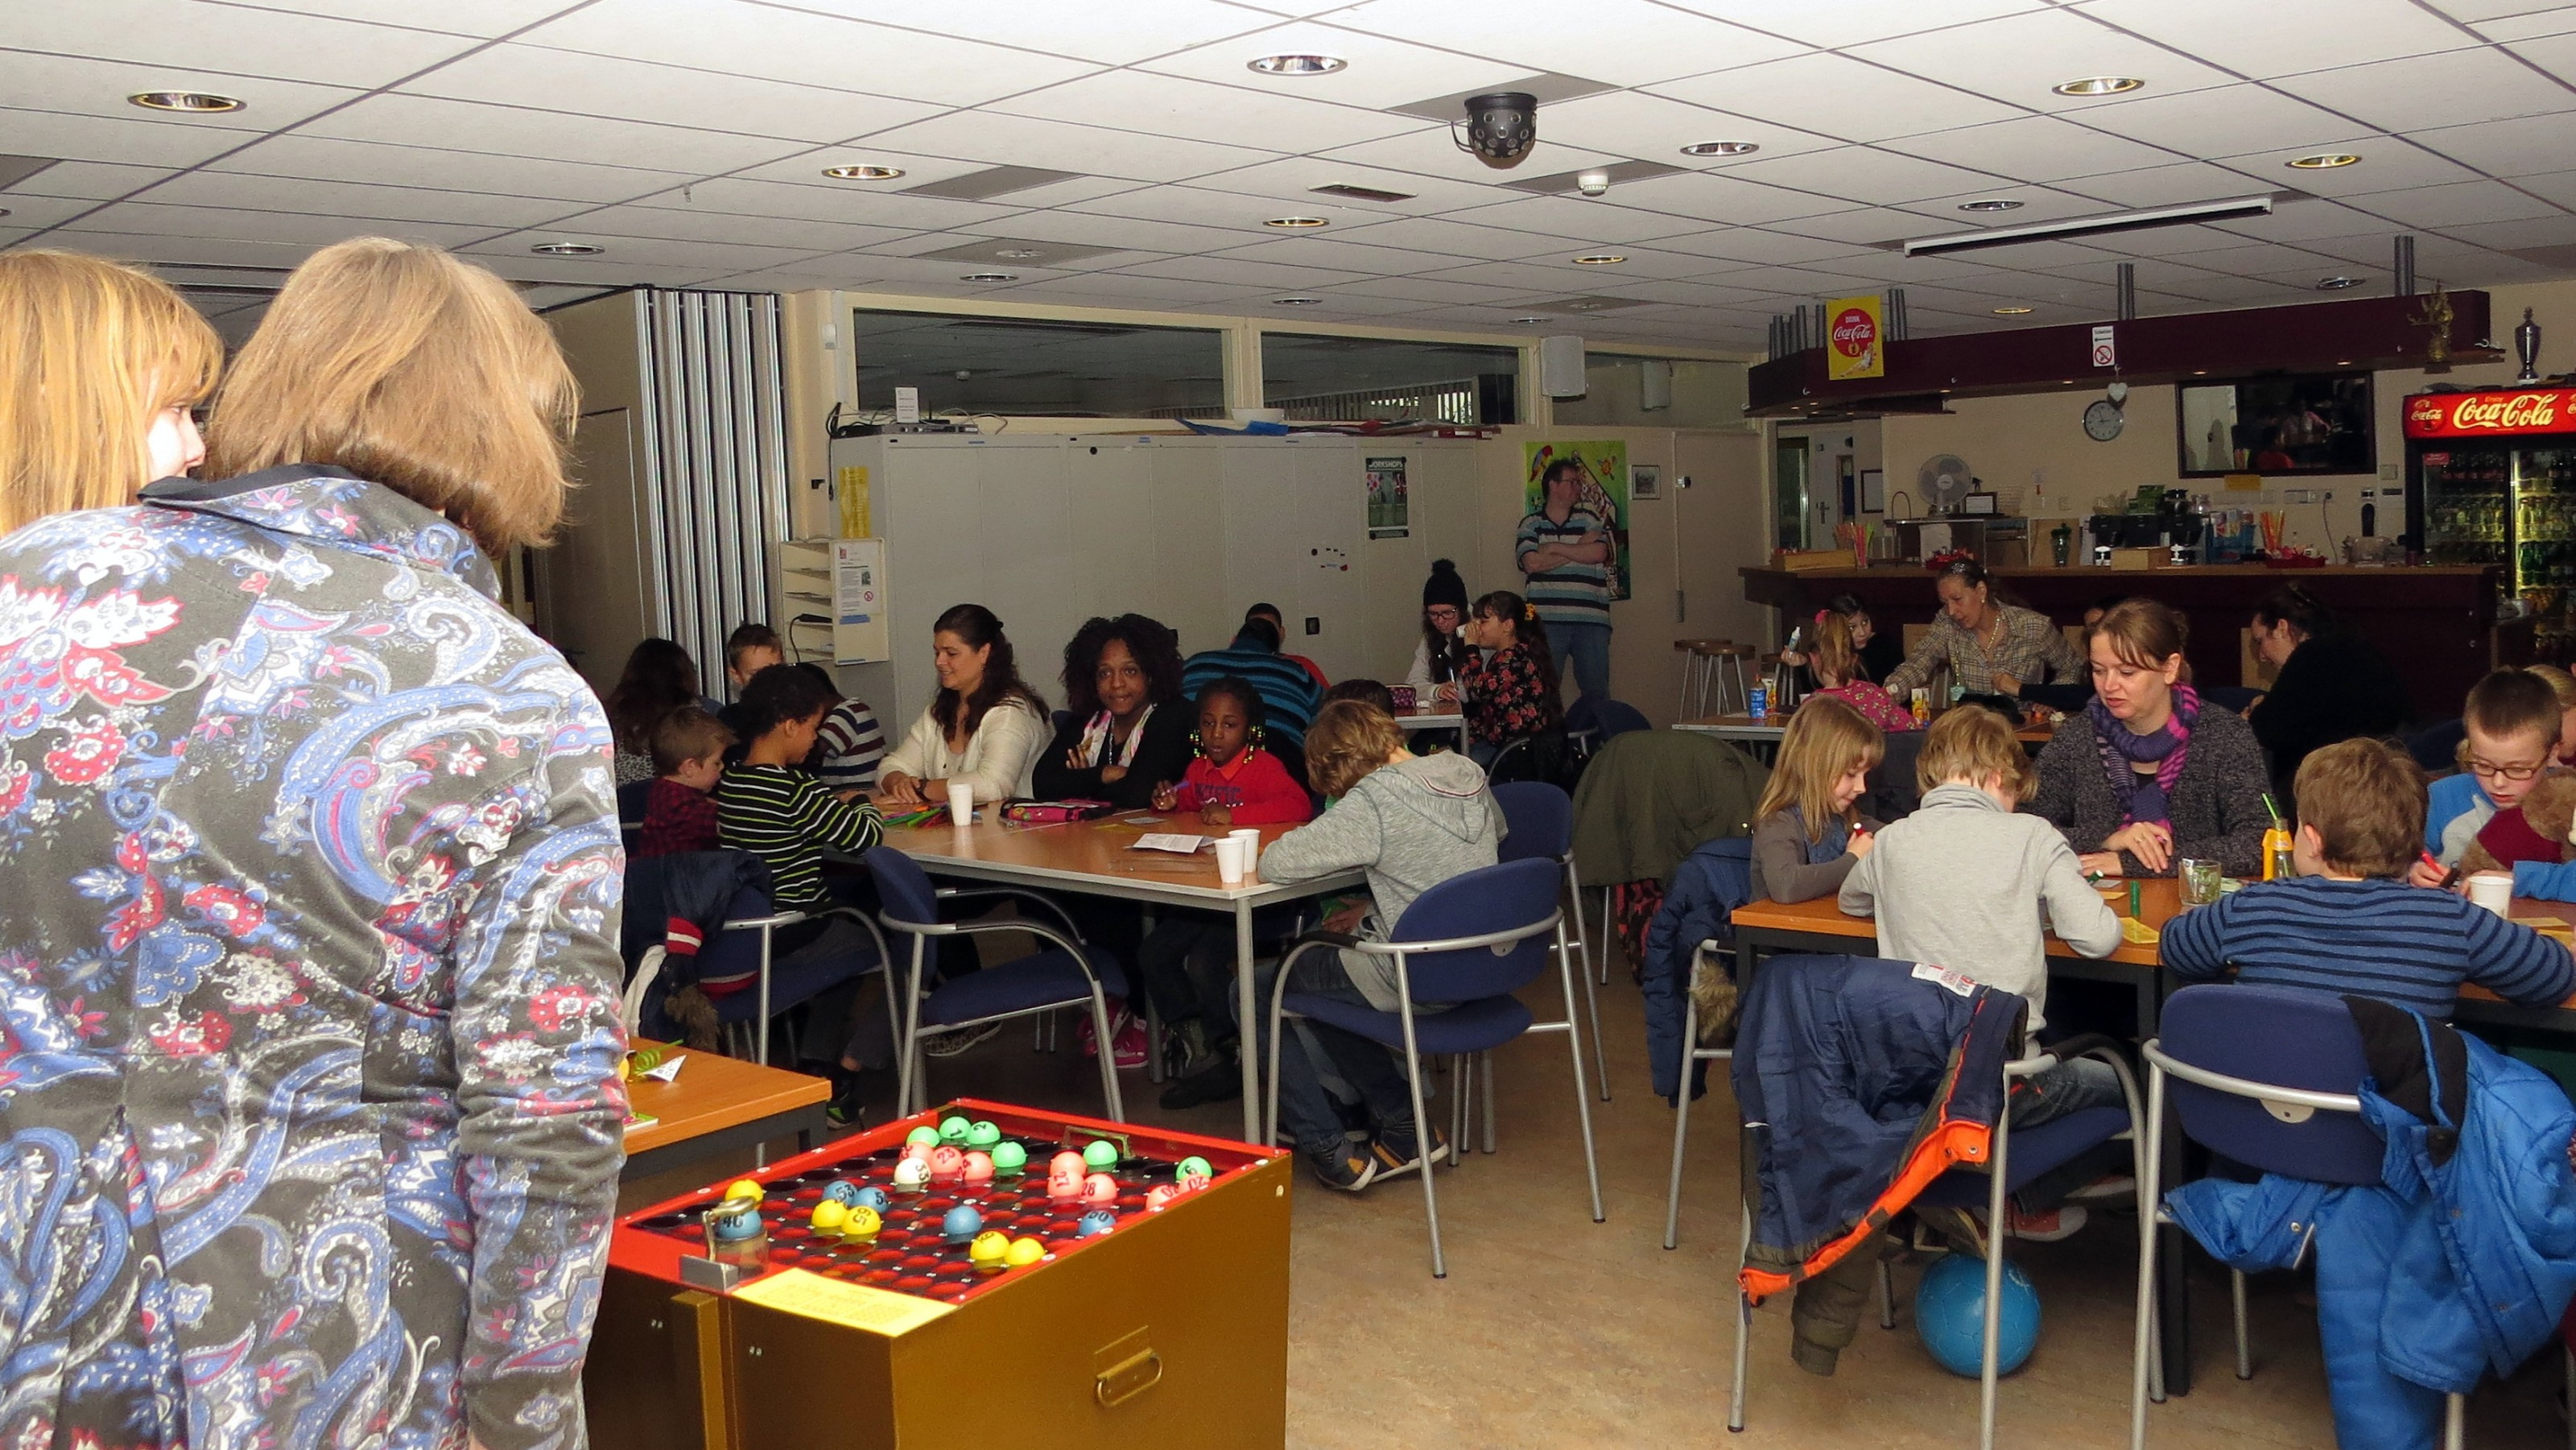 Kinderbingo 2015d0225t1455 qzh Zoetemeer Gaardedreef (Patio)